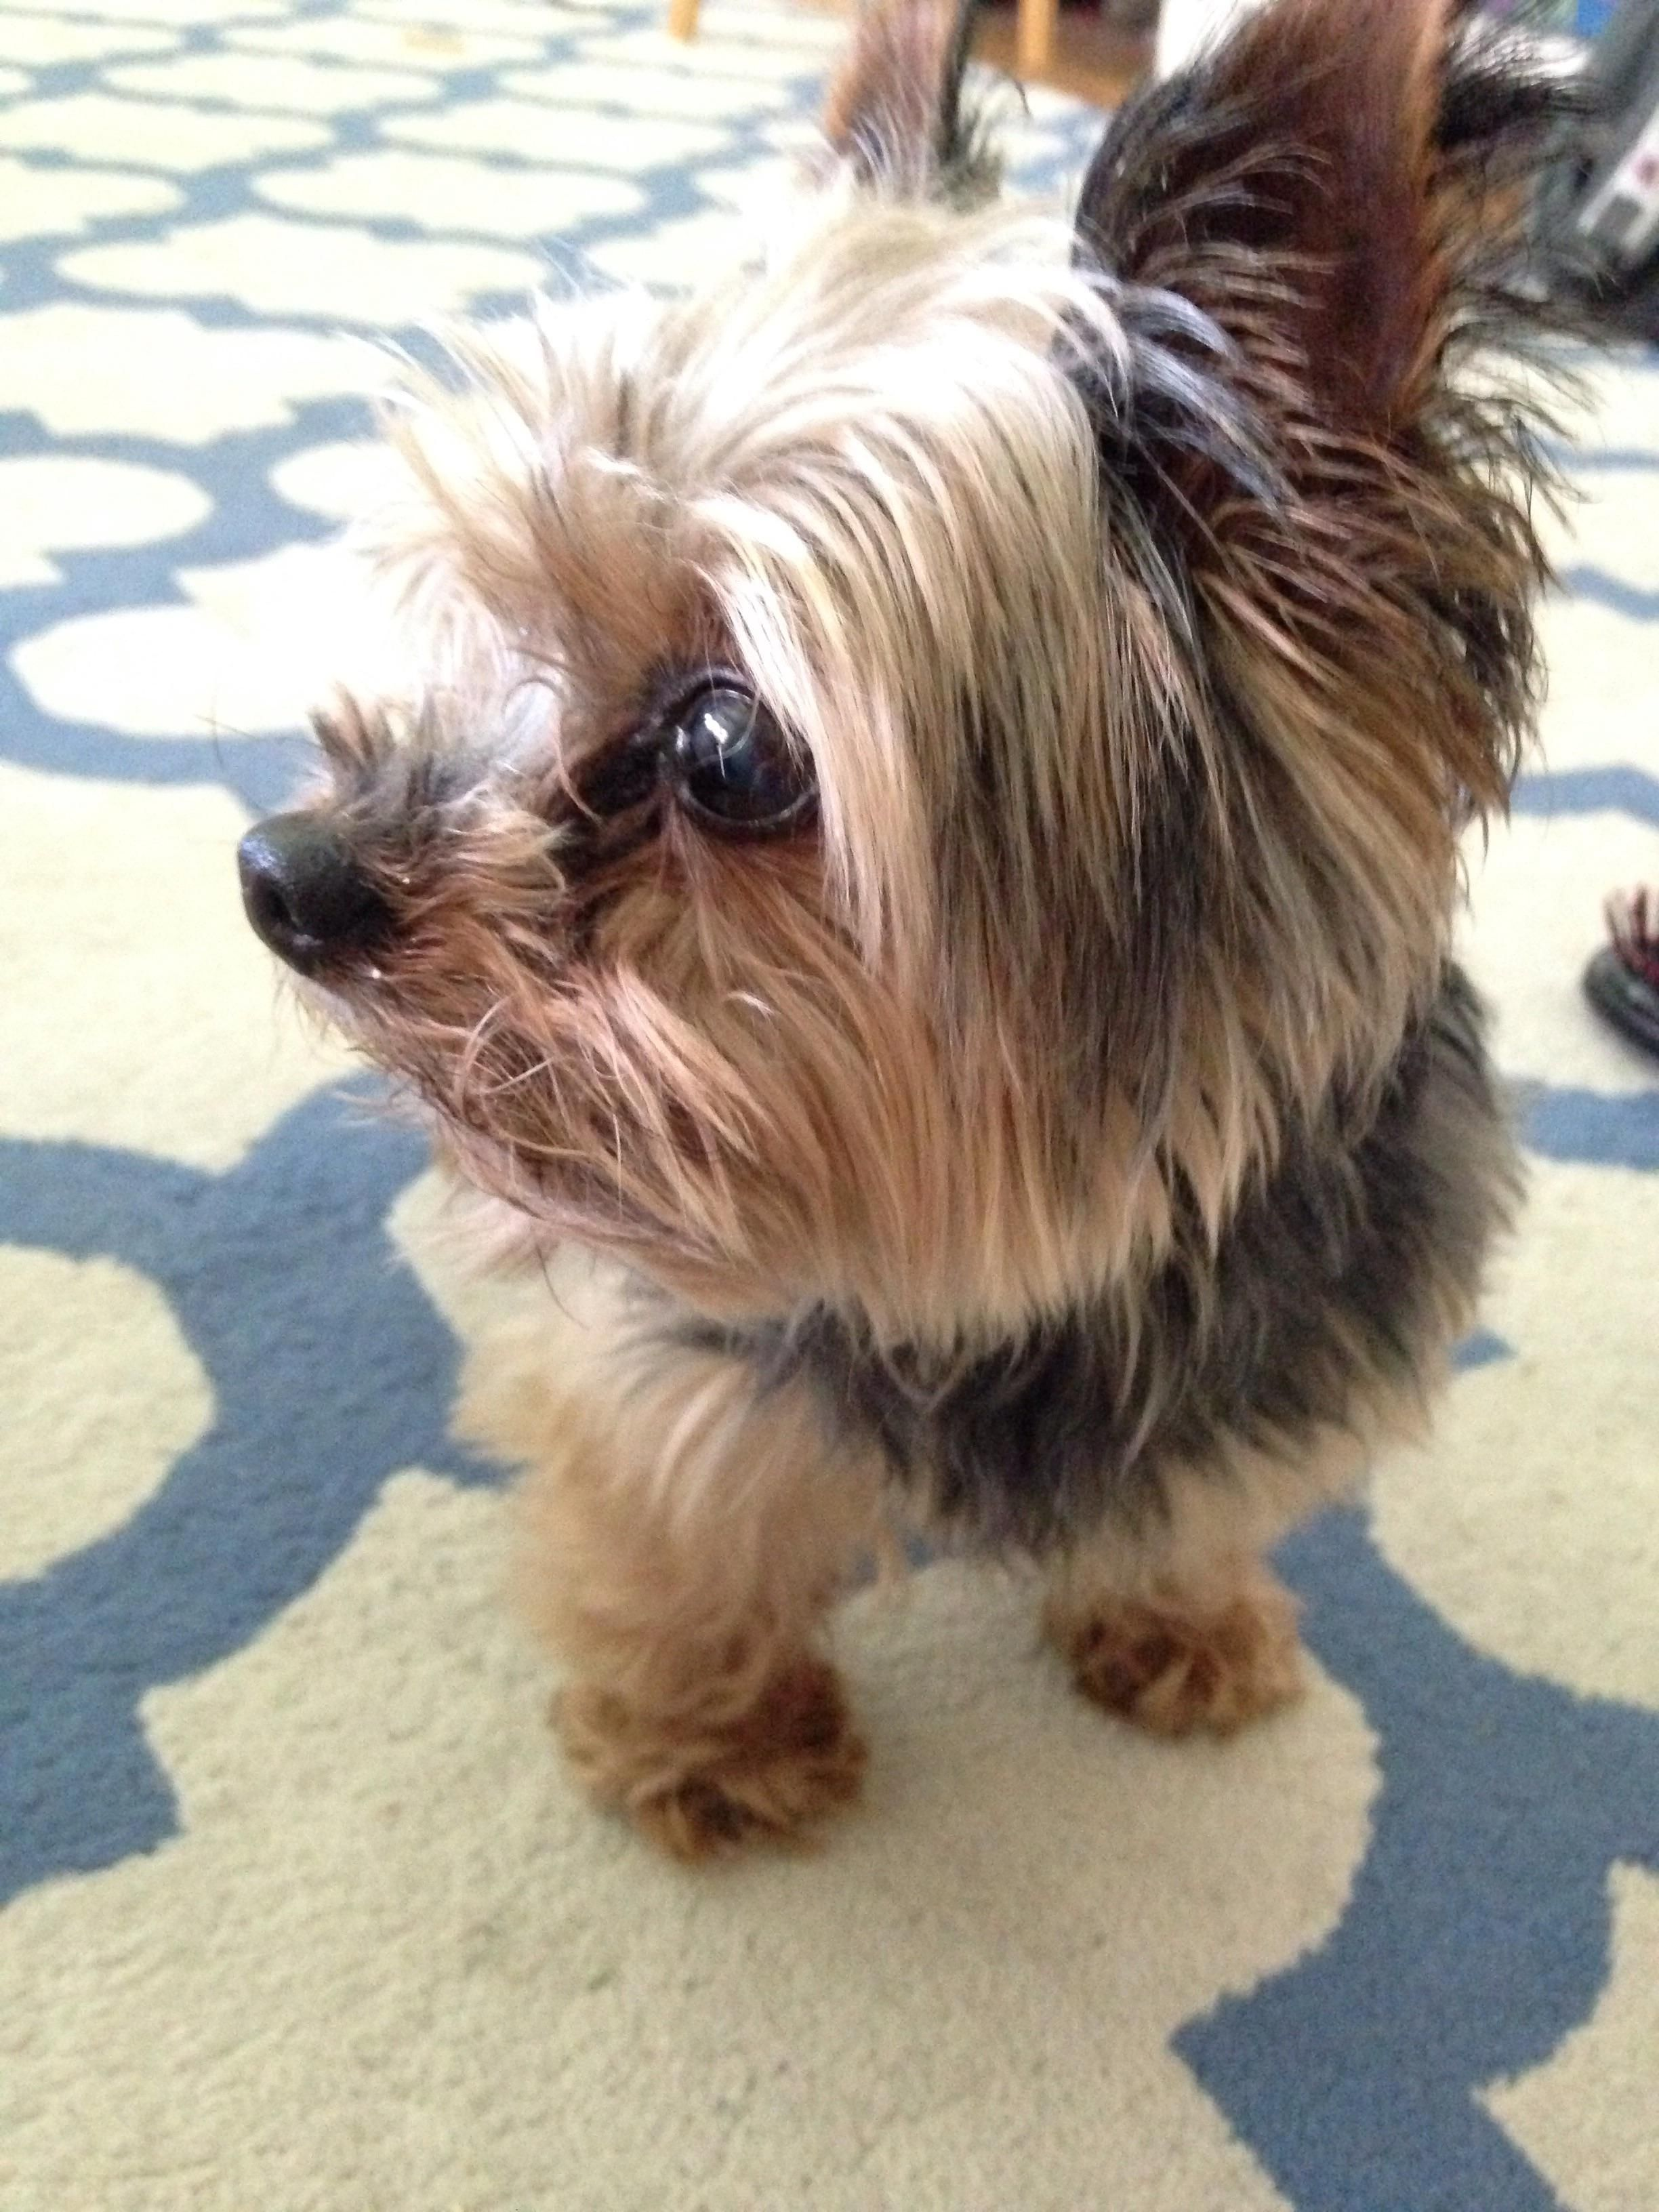 This Is Rambo A 12 Year Old Yorkie He S Blind Deaf Doesn T Have Any Teeth And Always Up For Cuddles Http Ift Tt 2q8spuu Blind Dog Yorkie Can Dogs Eat